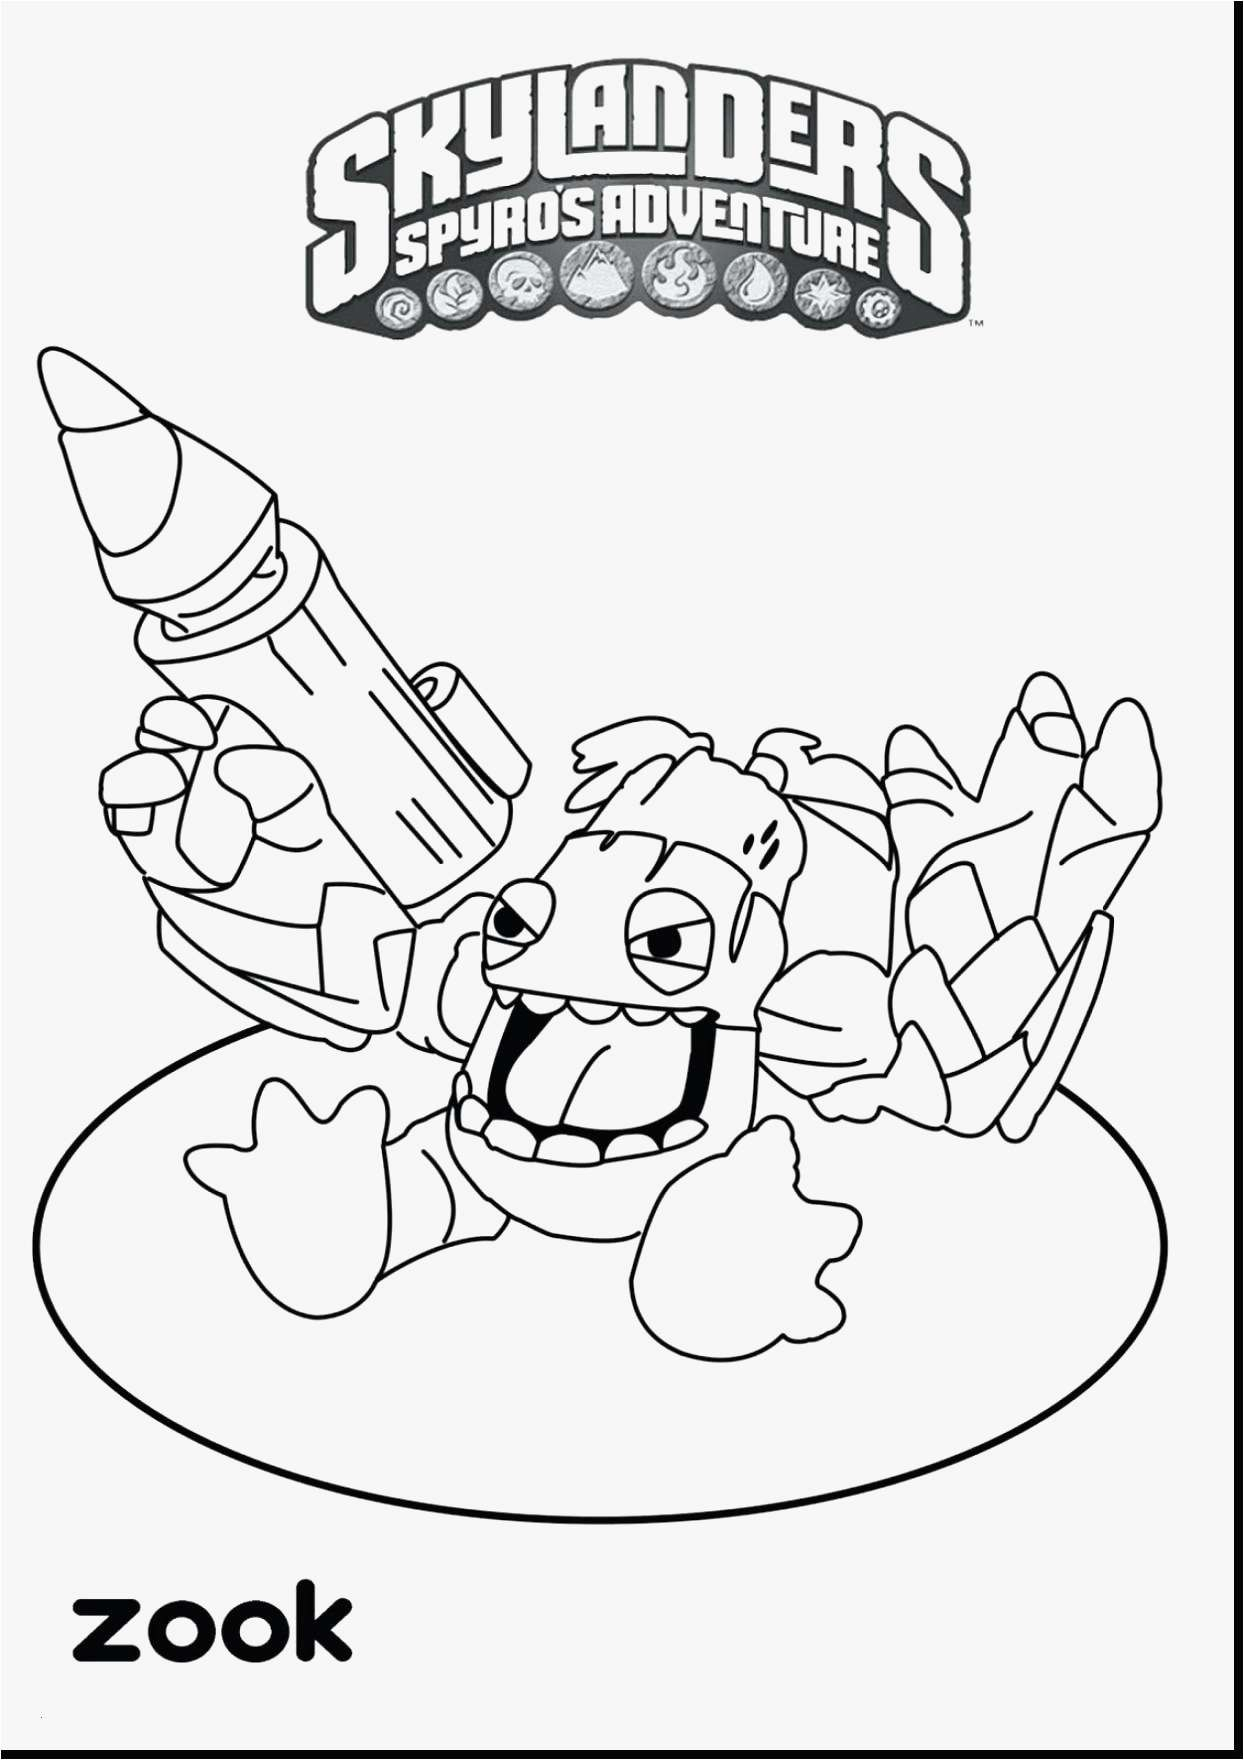 27 Bible Verse Coloring Pages Free Gallery - Coloring Sheets